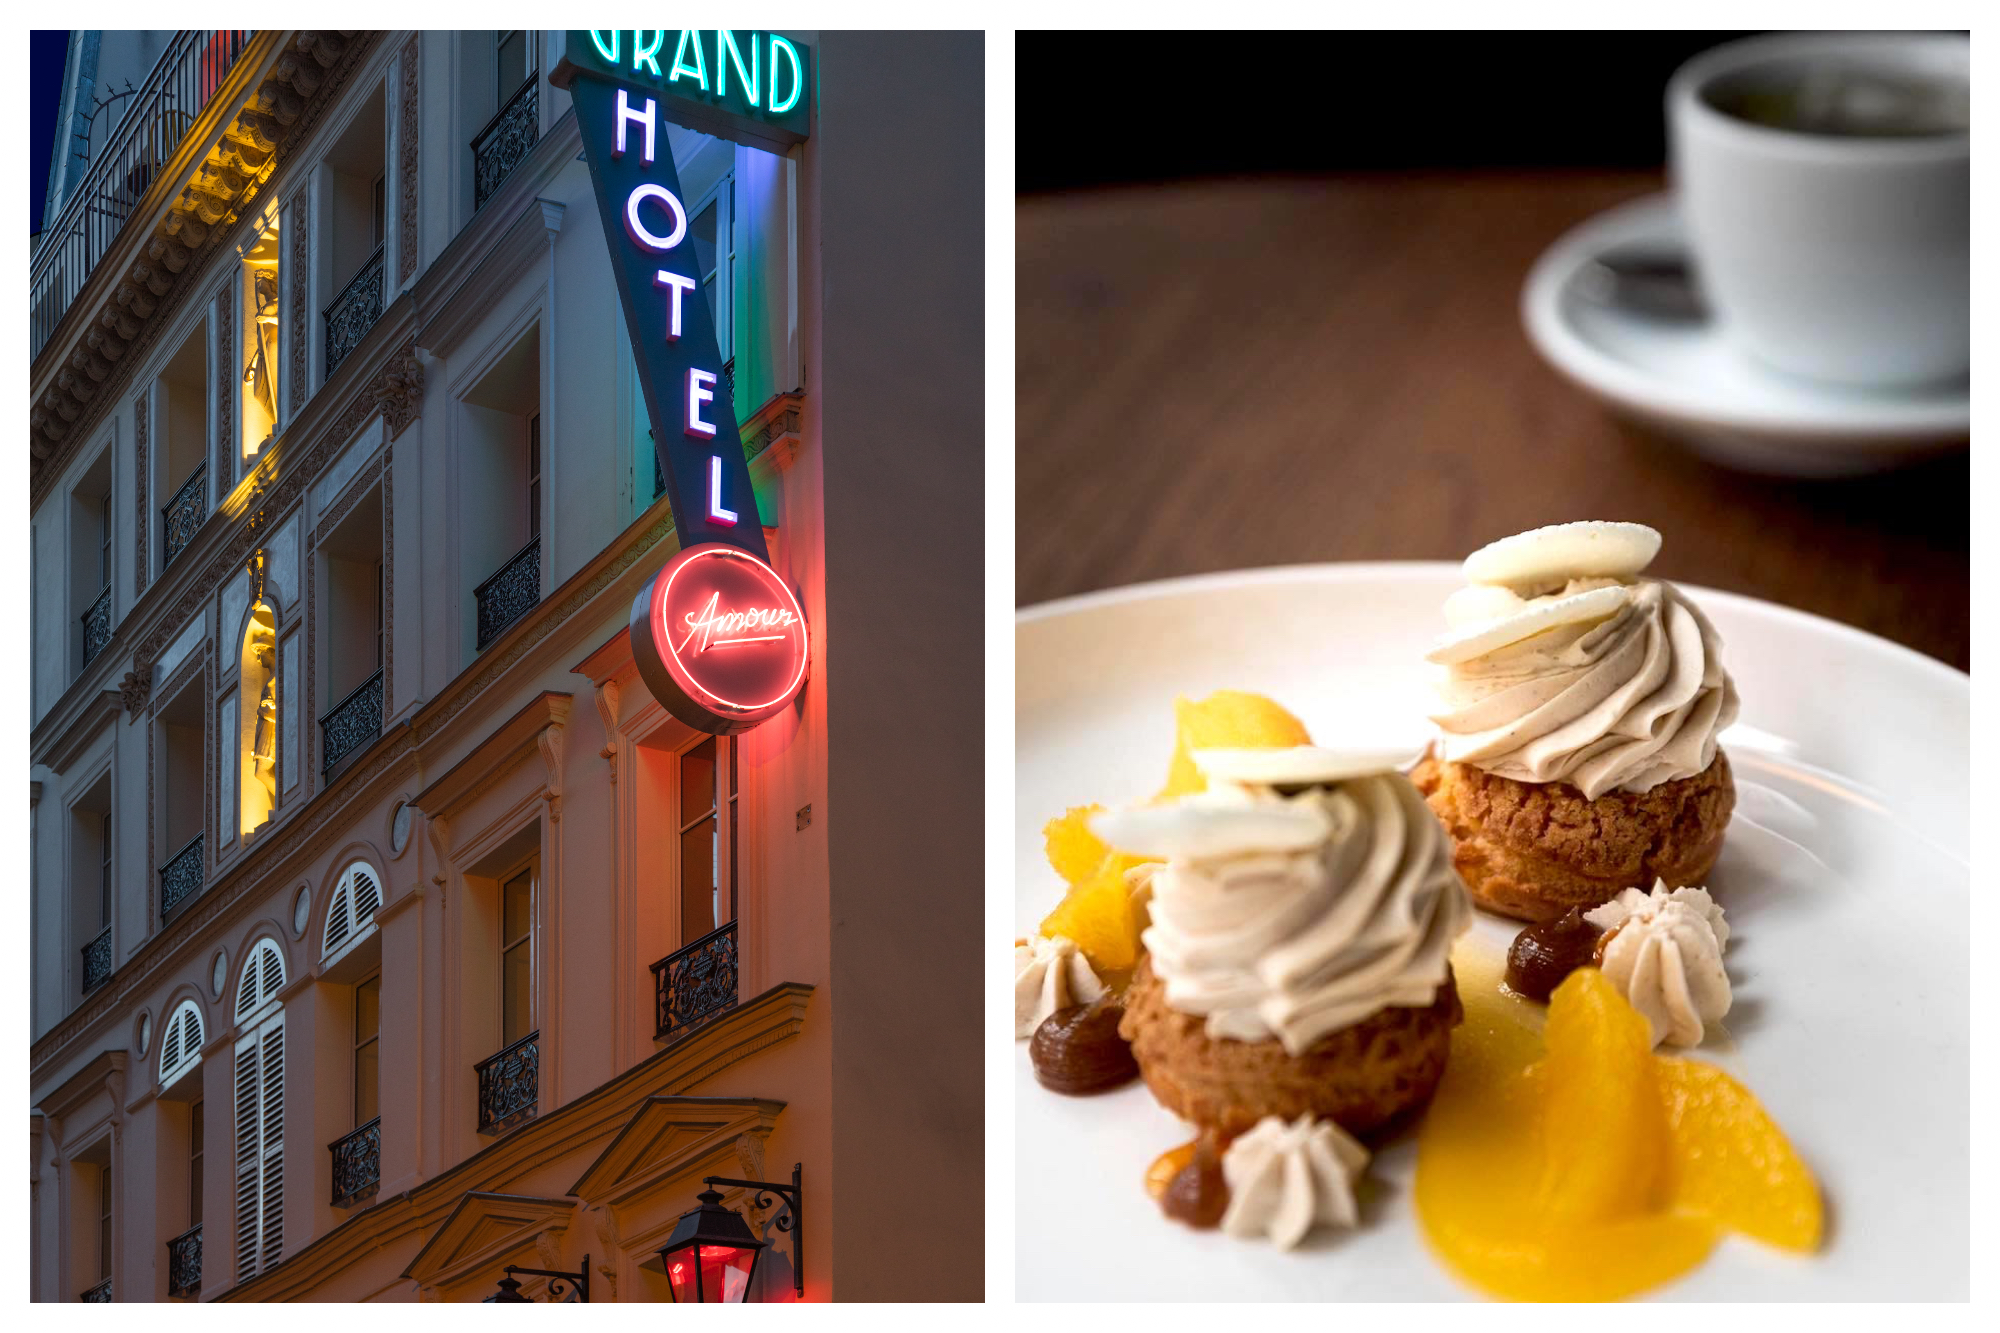 On left: The glow of the teal, purple, and red neon sign of the Hôtel Grand Amour in Paris' 10th arrondissement invites passer-by to step inside for a taste of bohemian spirit. On right: Elegantly-plated pâte à chou wear delicate swirls of chestnut cream, surrounded by vibrant orange slices.